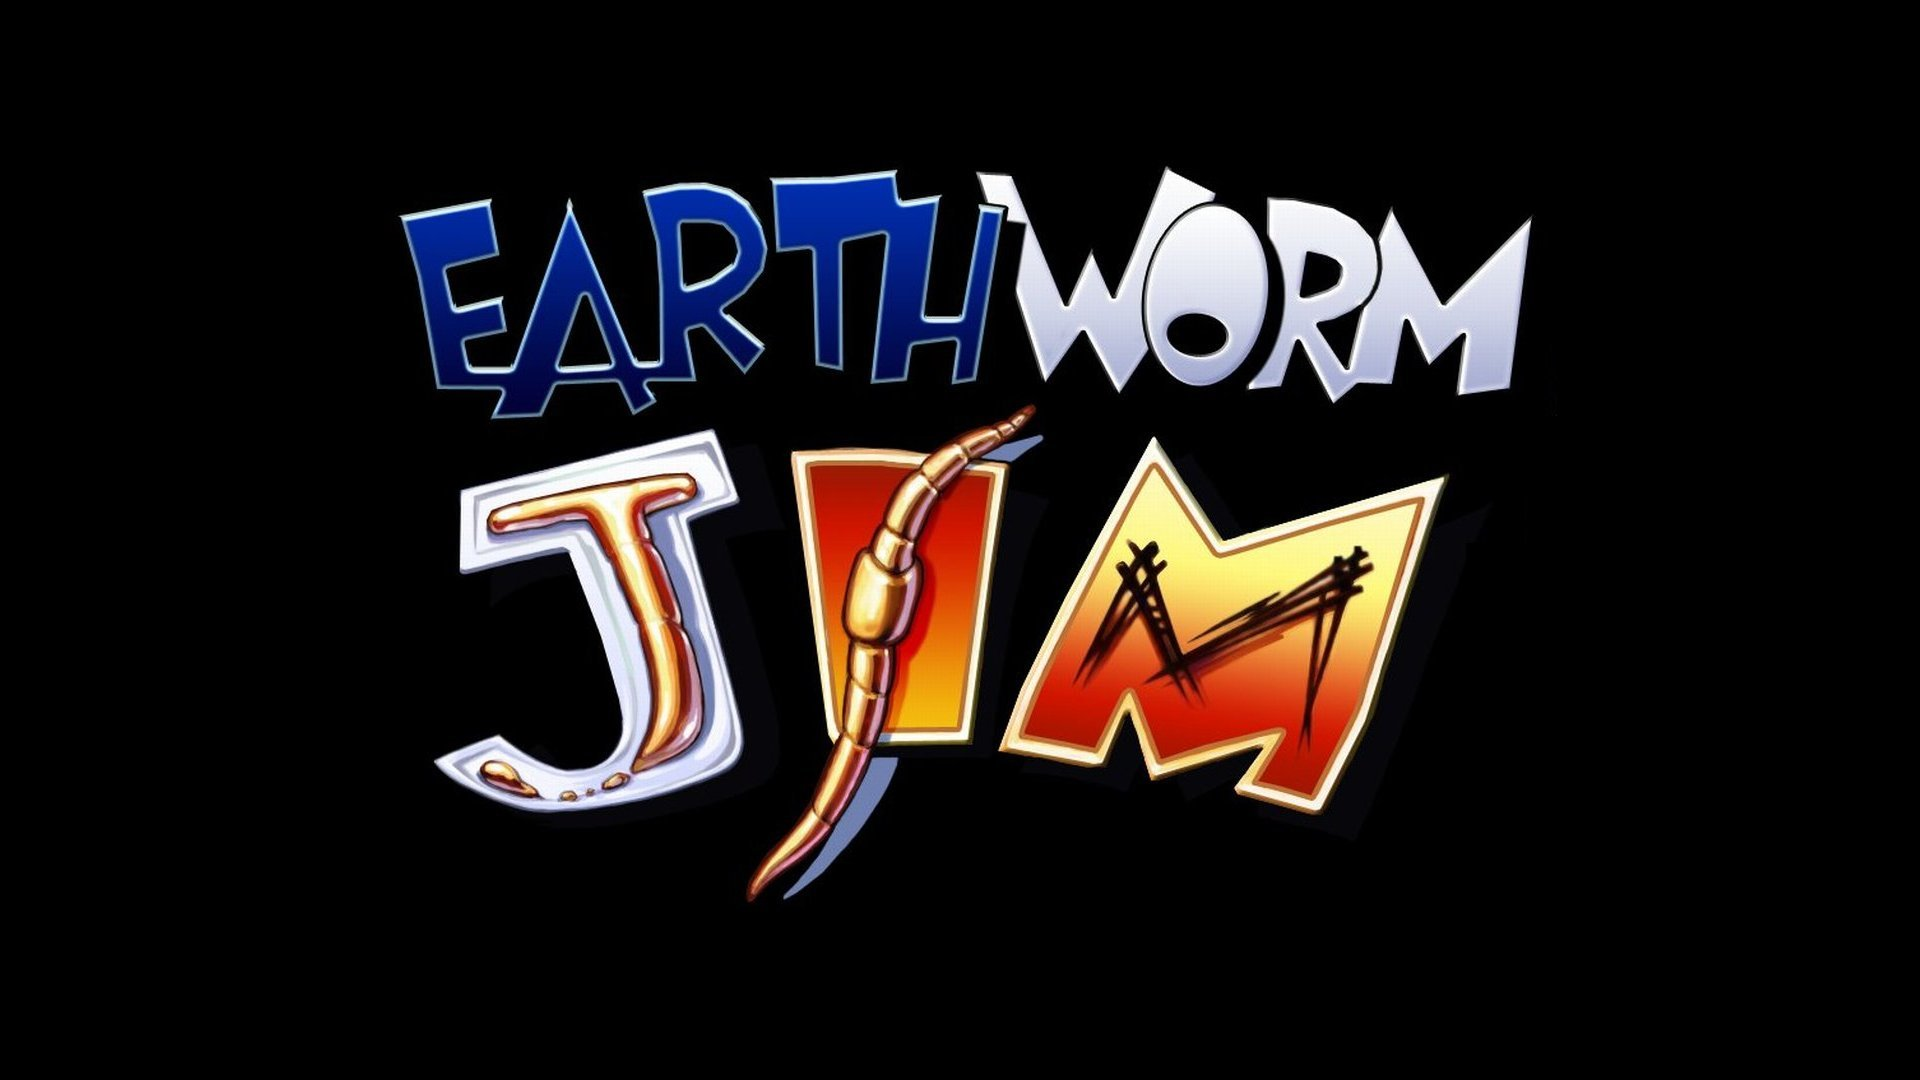 Download full hd 1080p Earthworm Jim desktop background ID:455026 for free